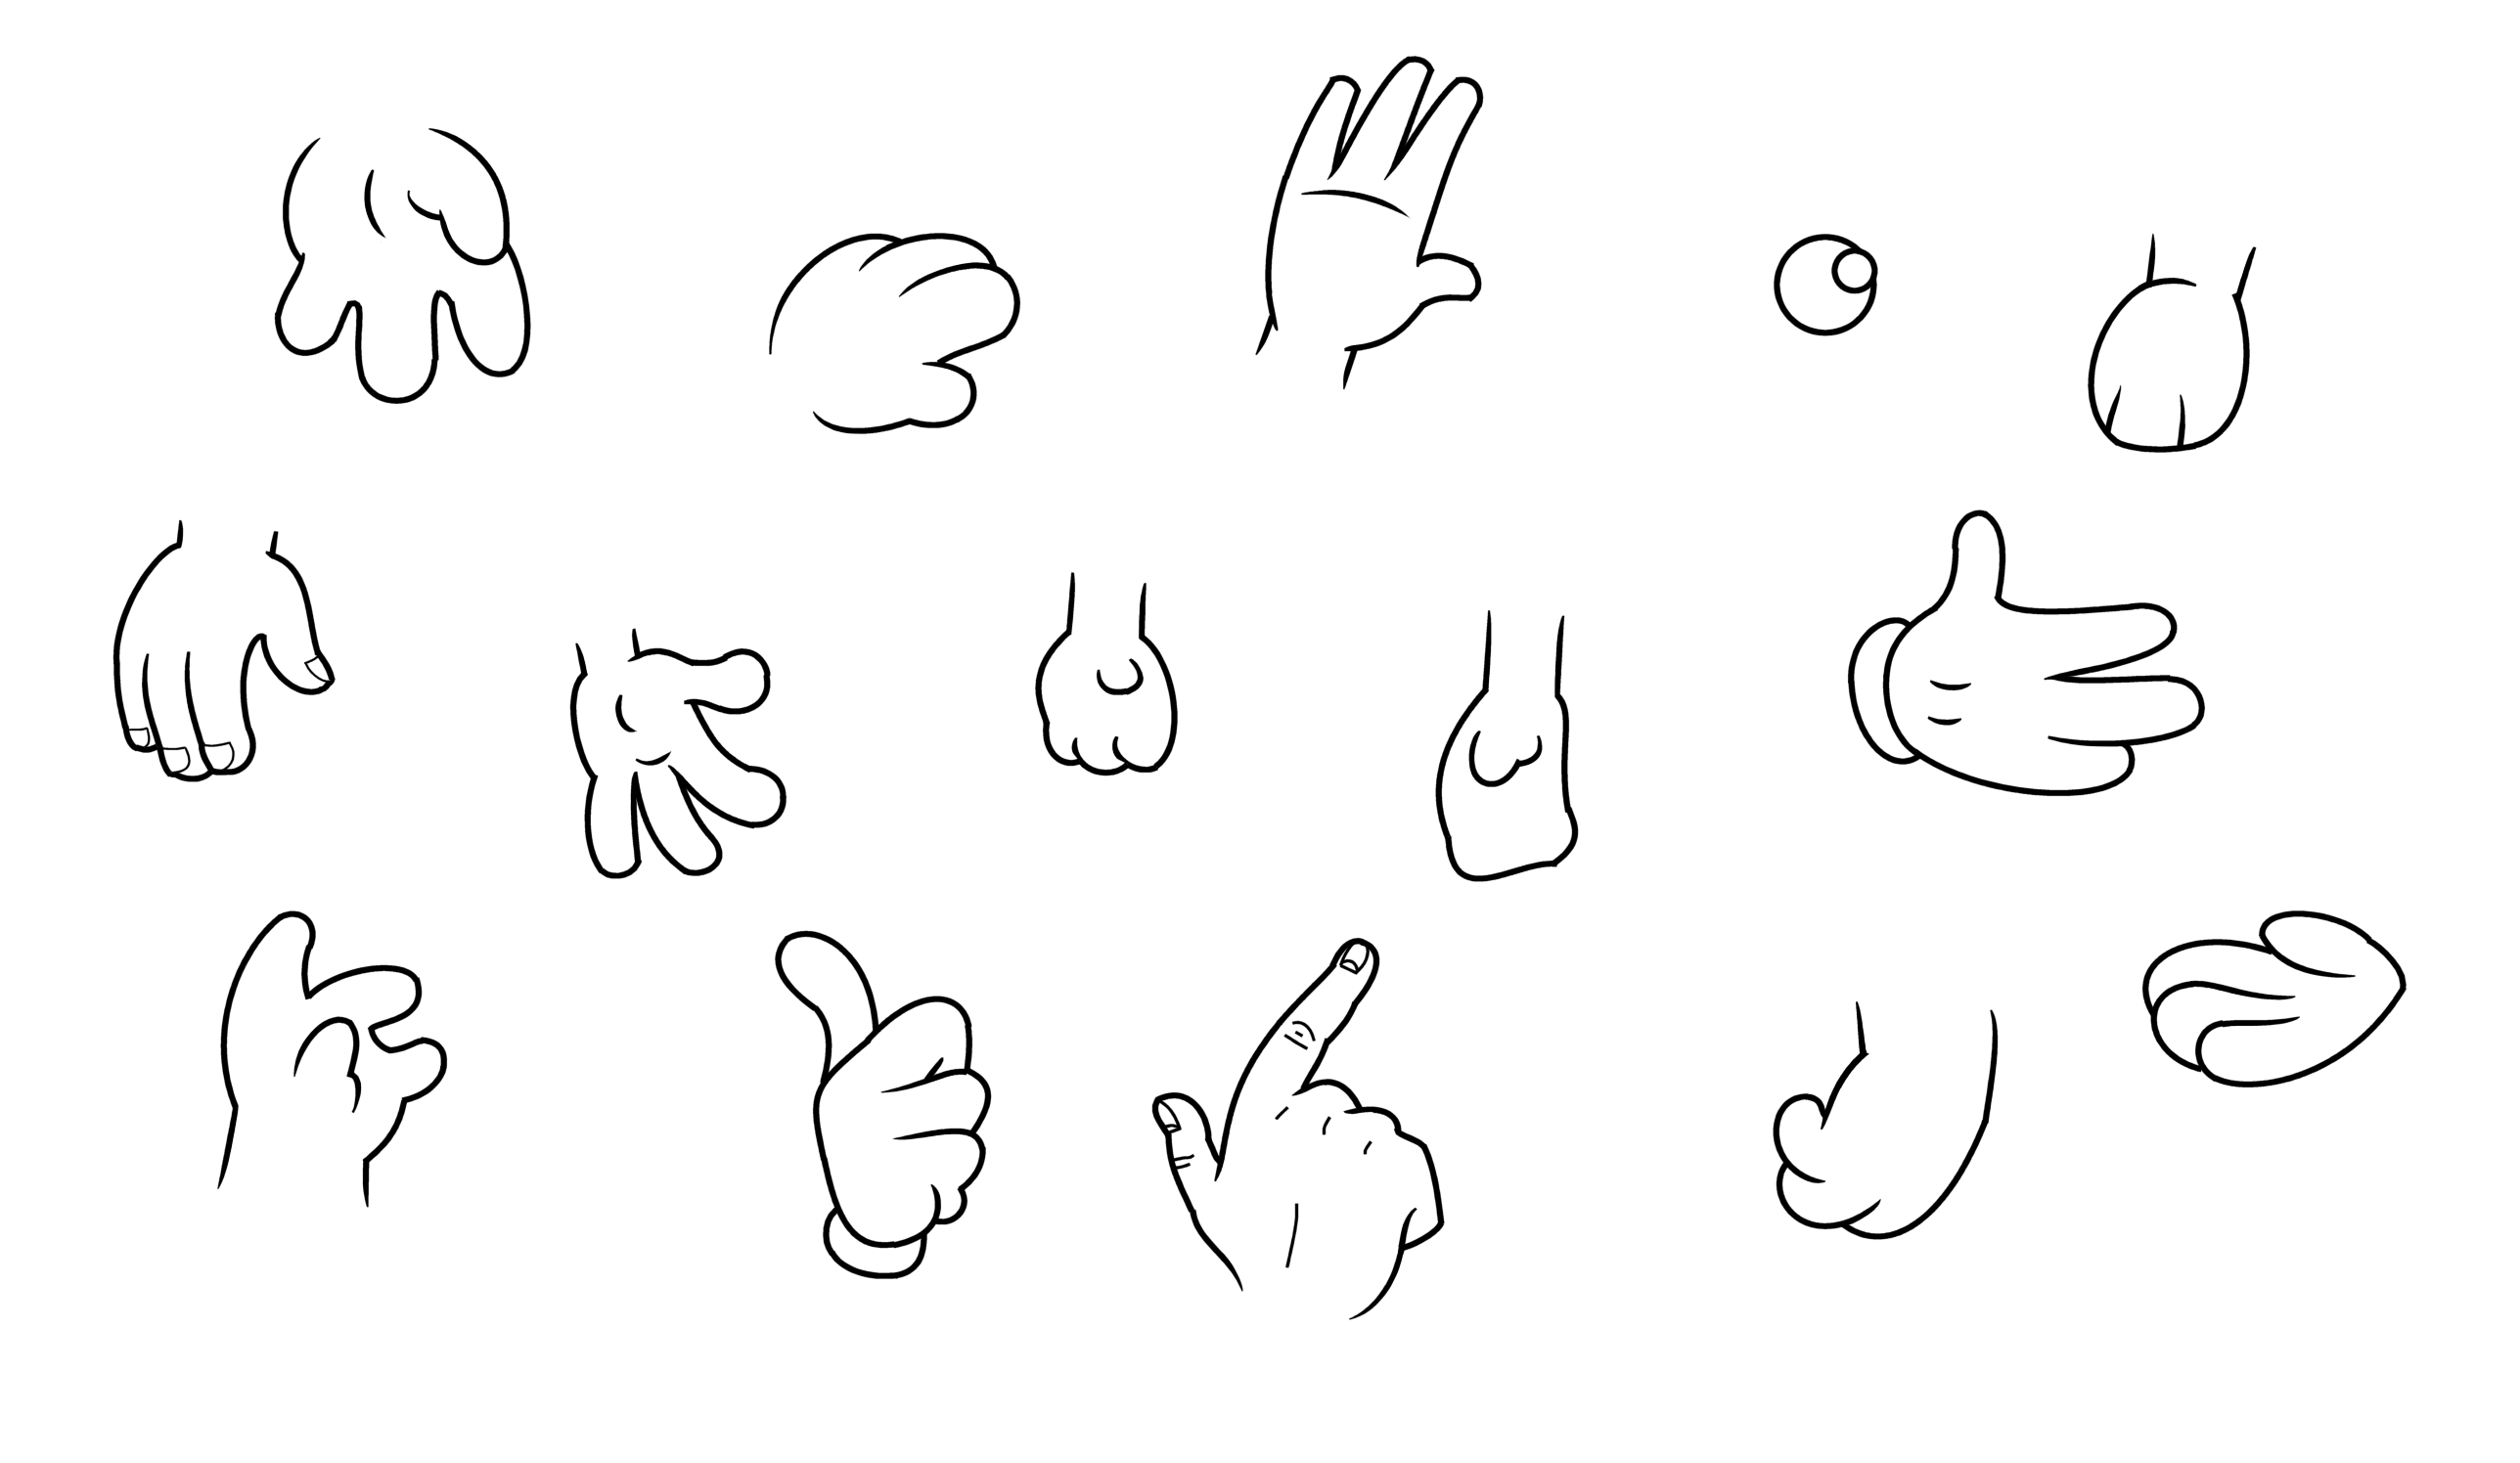 How To Draw Animated Hands